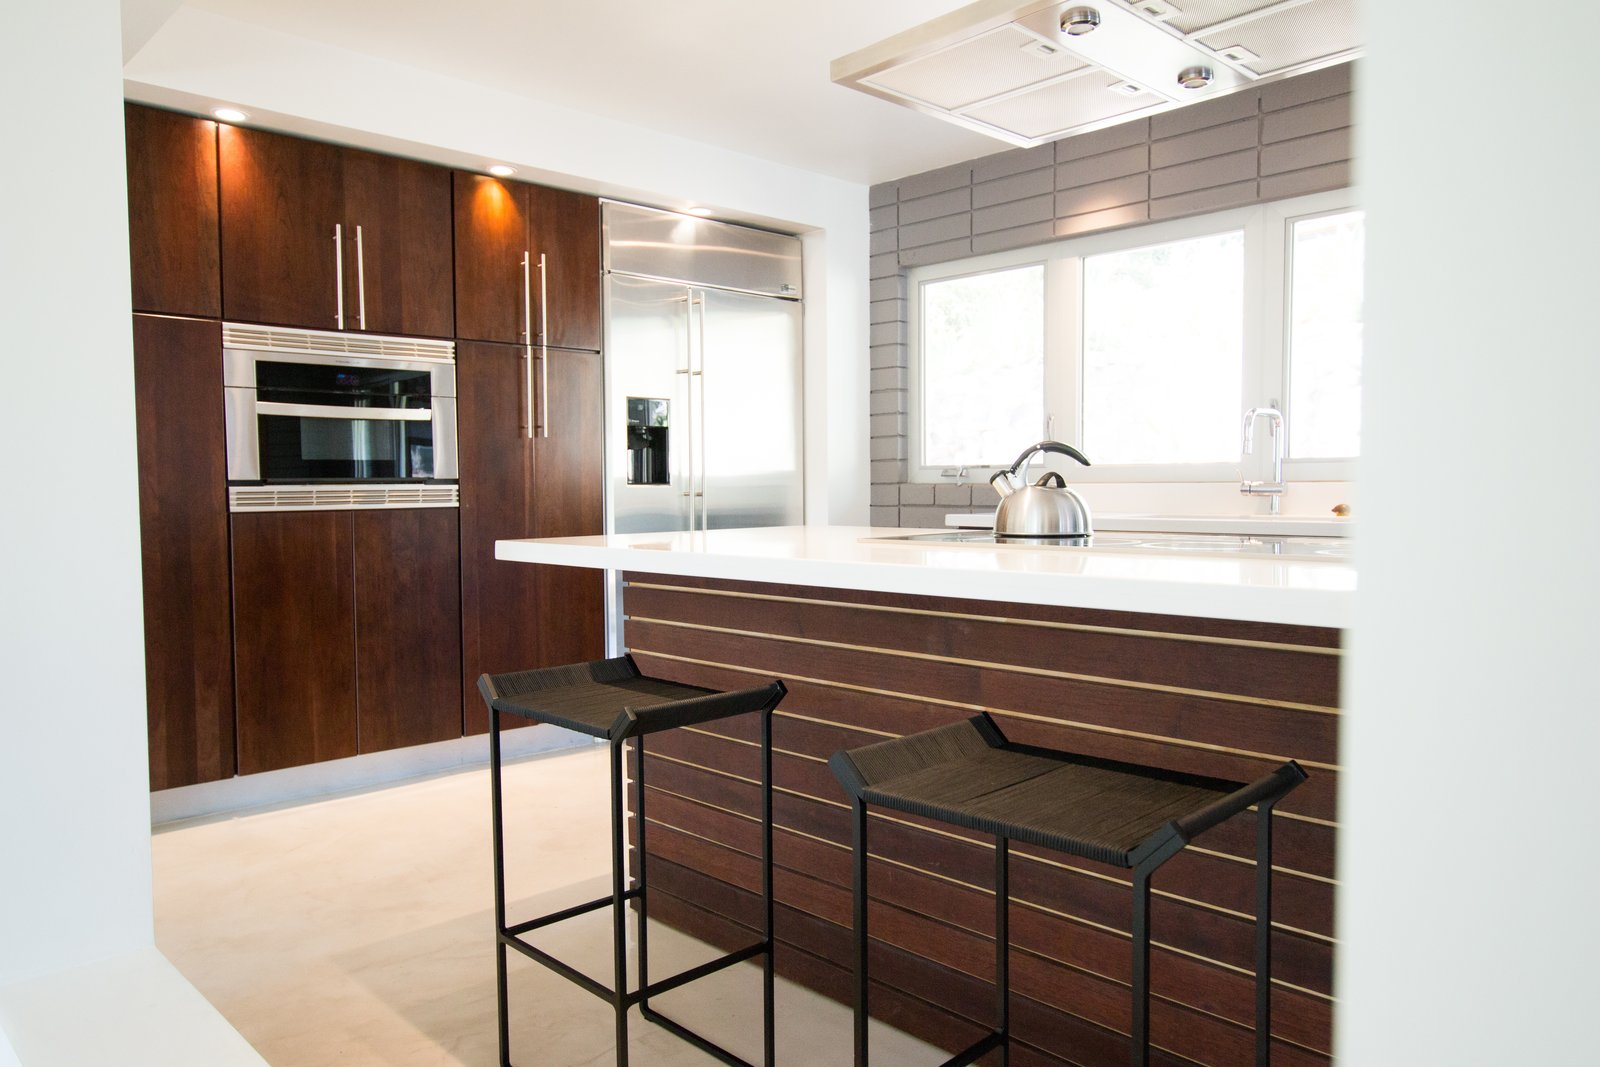 Custom Kitchen: Solid Cherry Casework, Quartz Countertops + Polished Concrete Floors  Edgewood